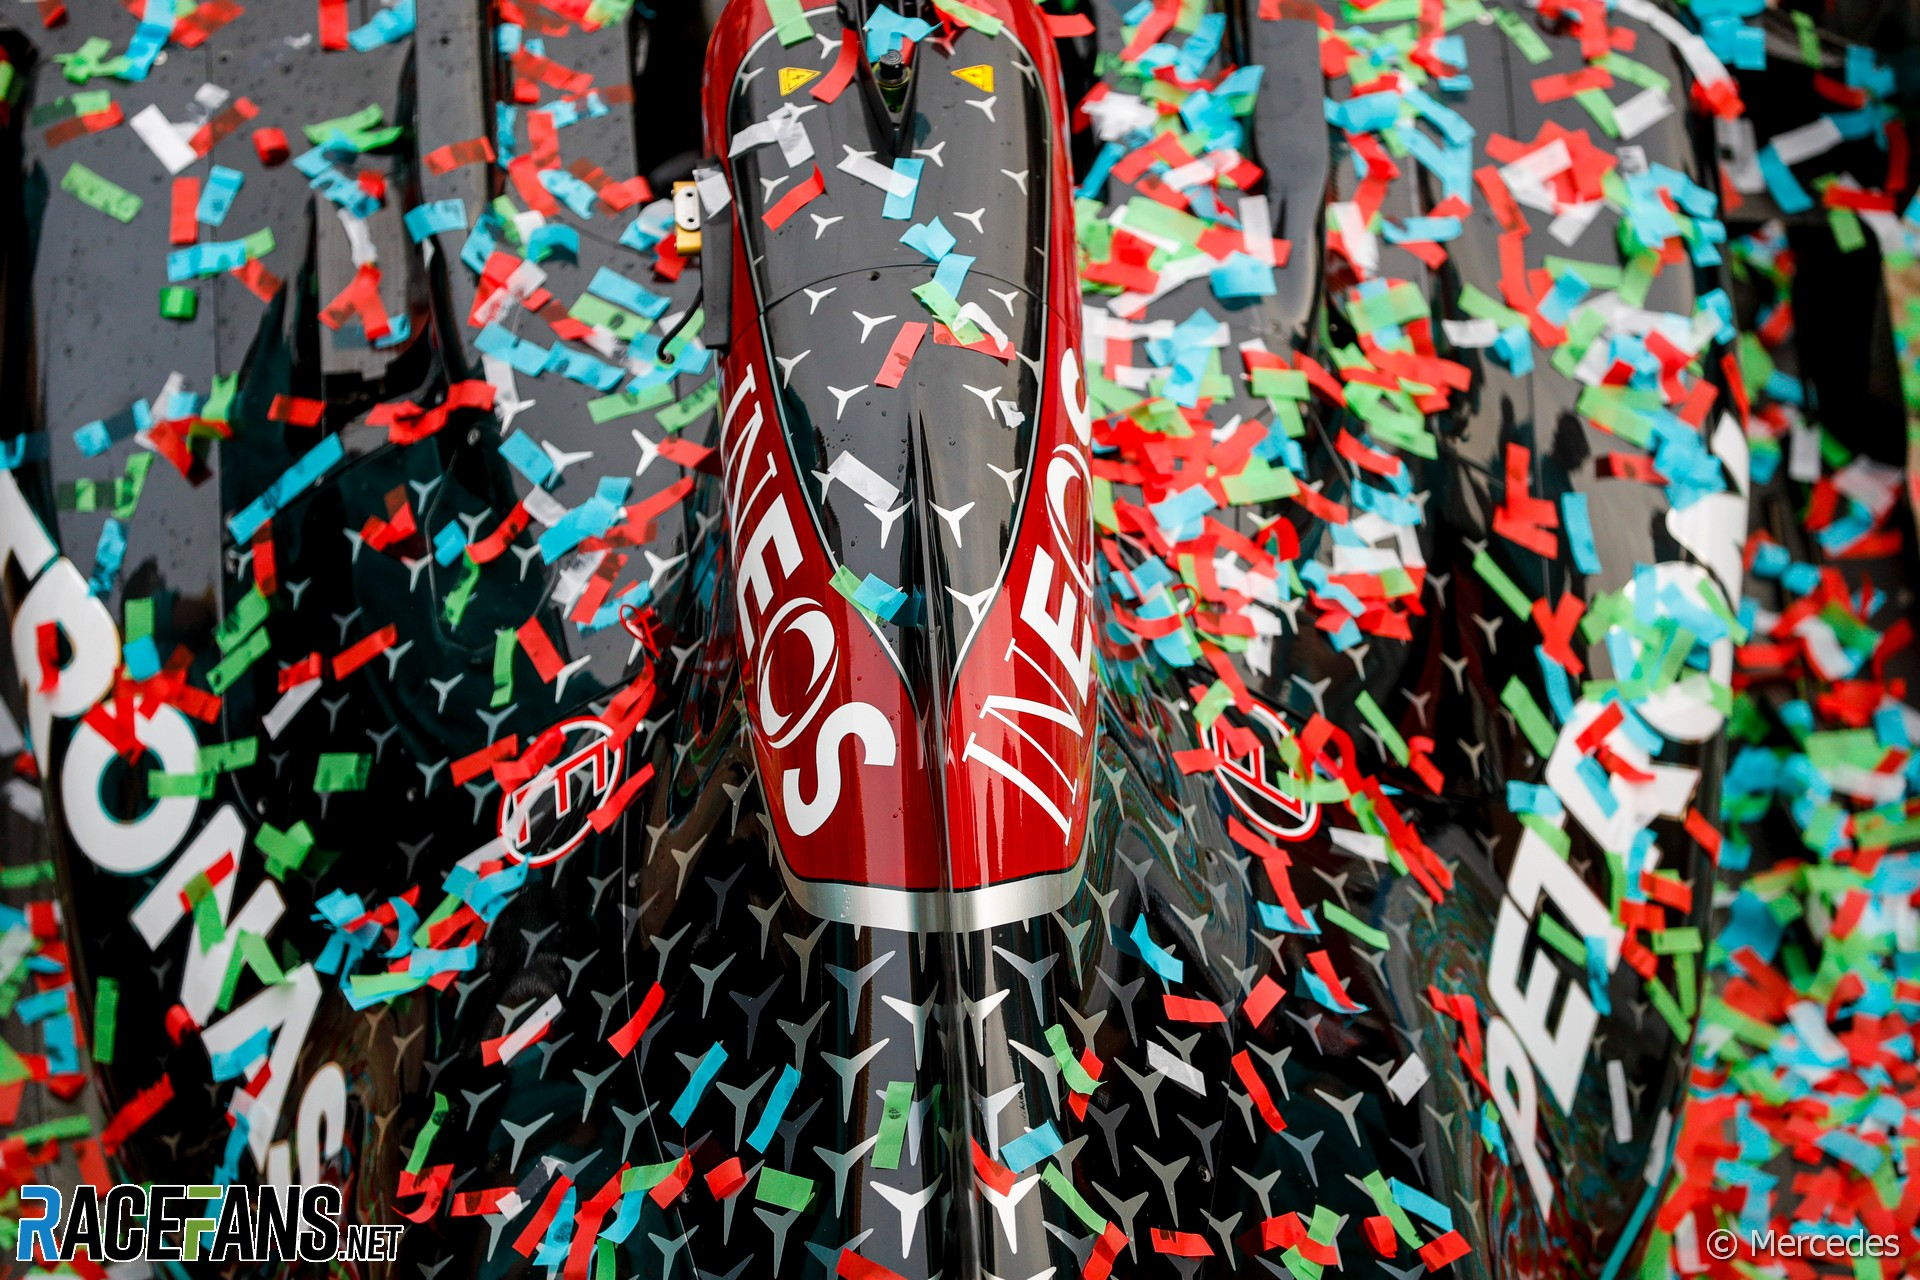 Mercedes celebrate their seventh constructors' championship, Imola, 2020